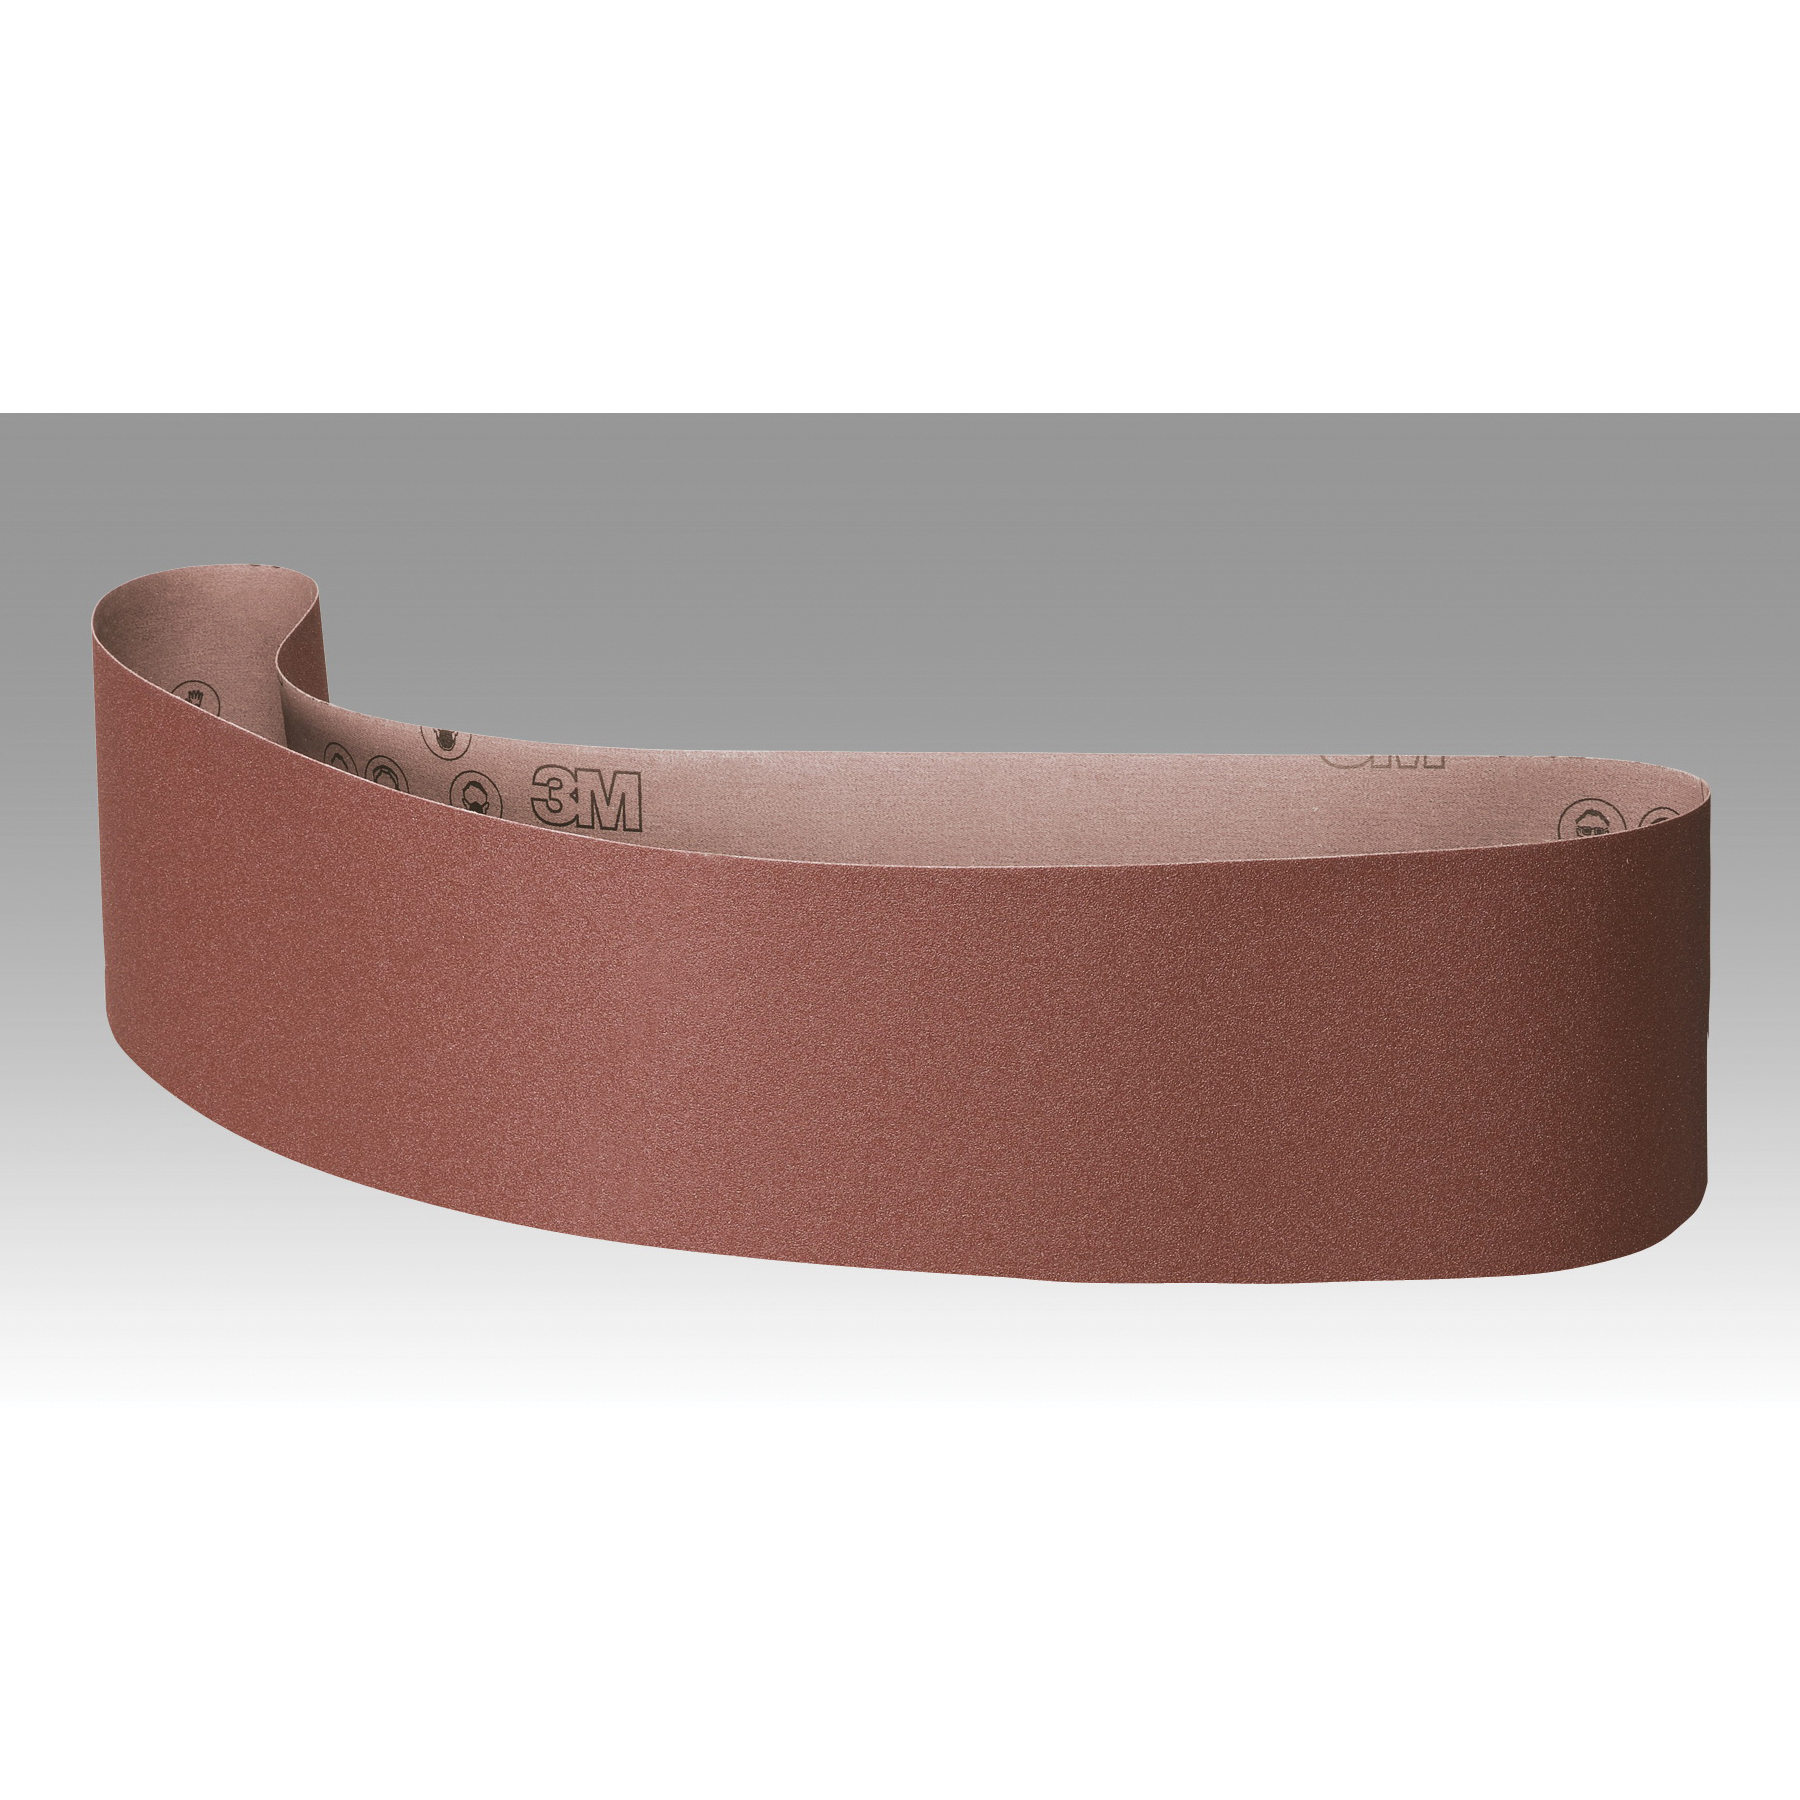 3M™ 051144-76398 Narrow Coated Abrasive Belt, 6 in W x 60 in L, 60 Grit, Medium Grade, Aluminum Oxide Abrasive, Polyester Backing